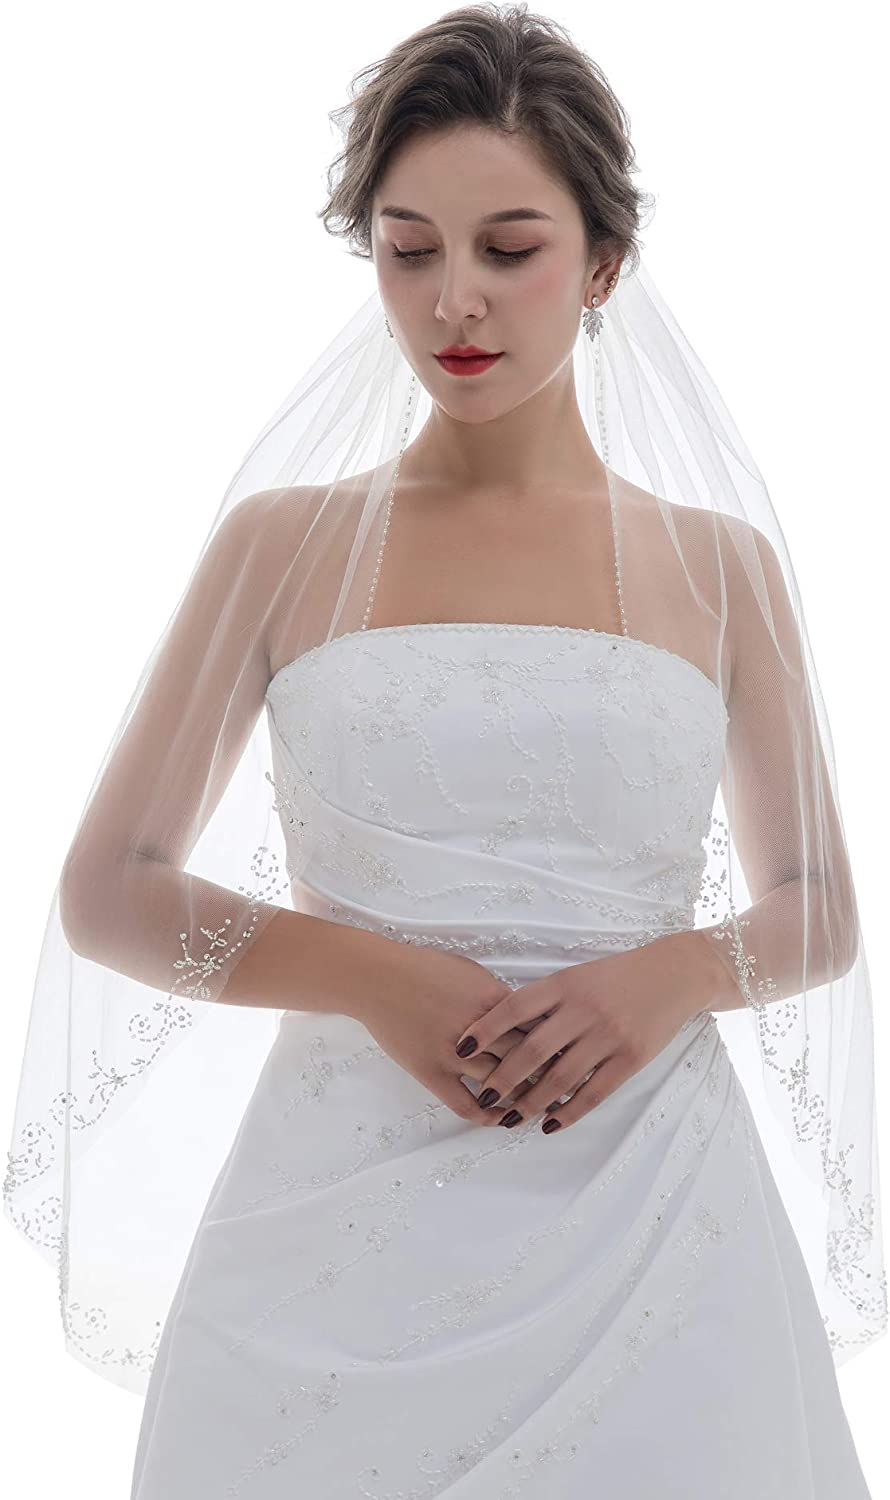 SAMKY 1T 1 Tier Floral Vine Leaf Crystal Beaded Bridal Wedding Veil